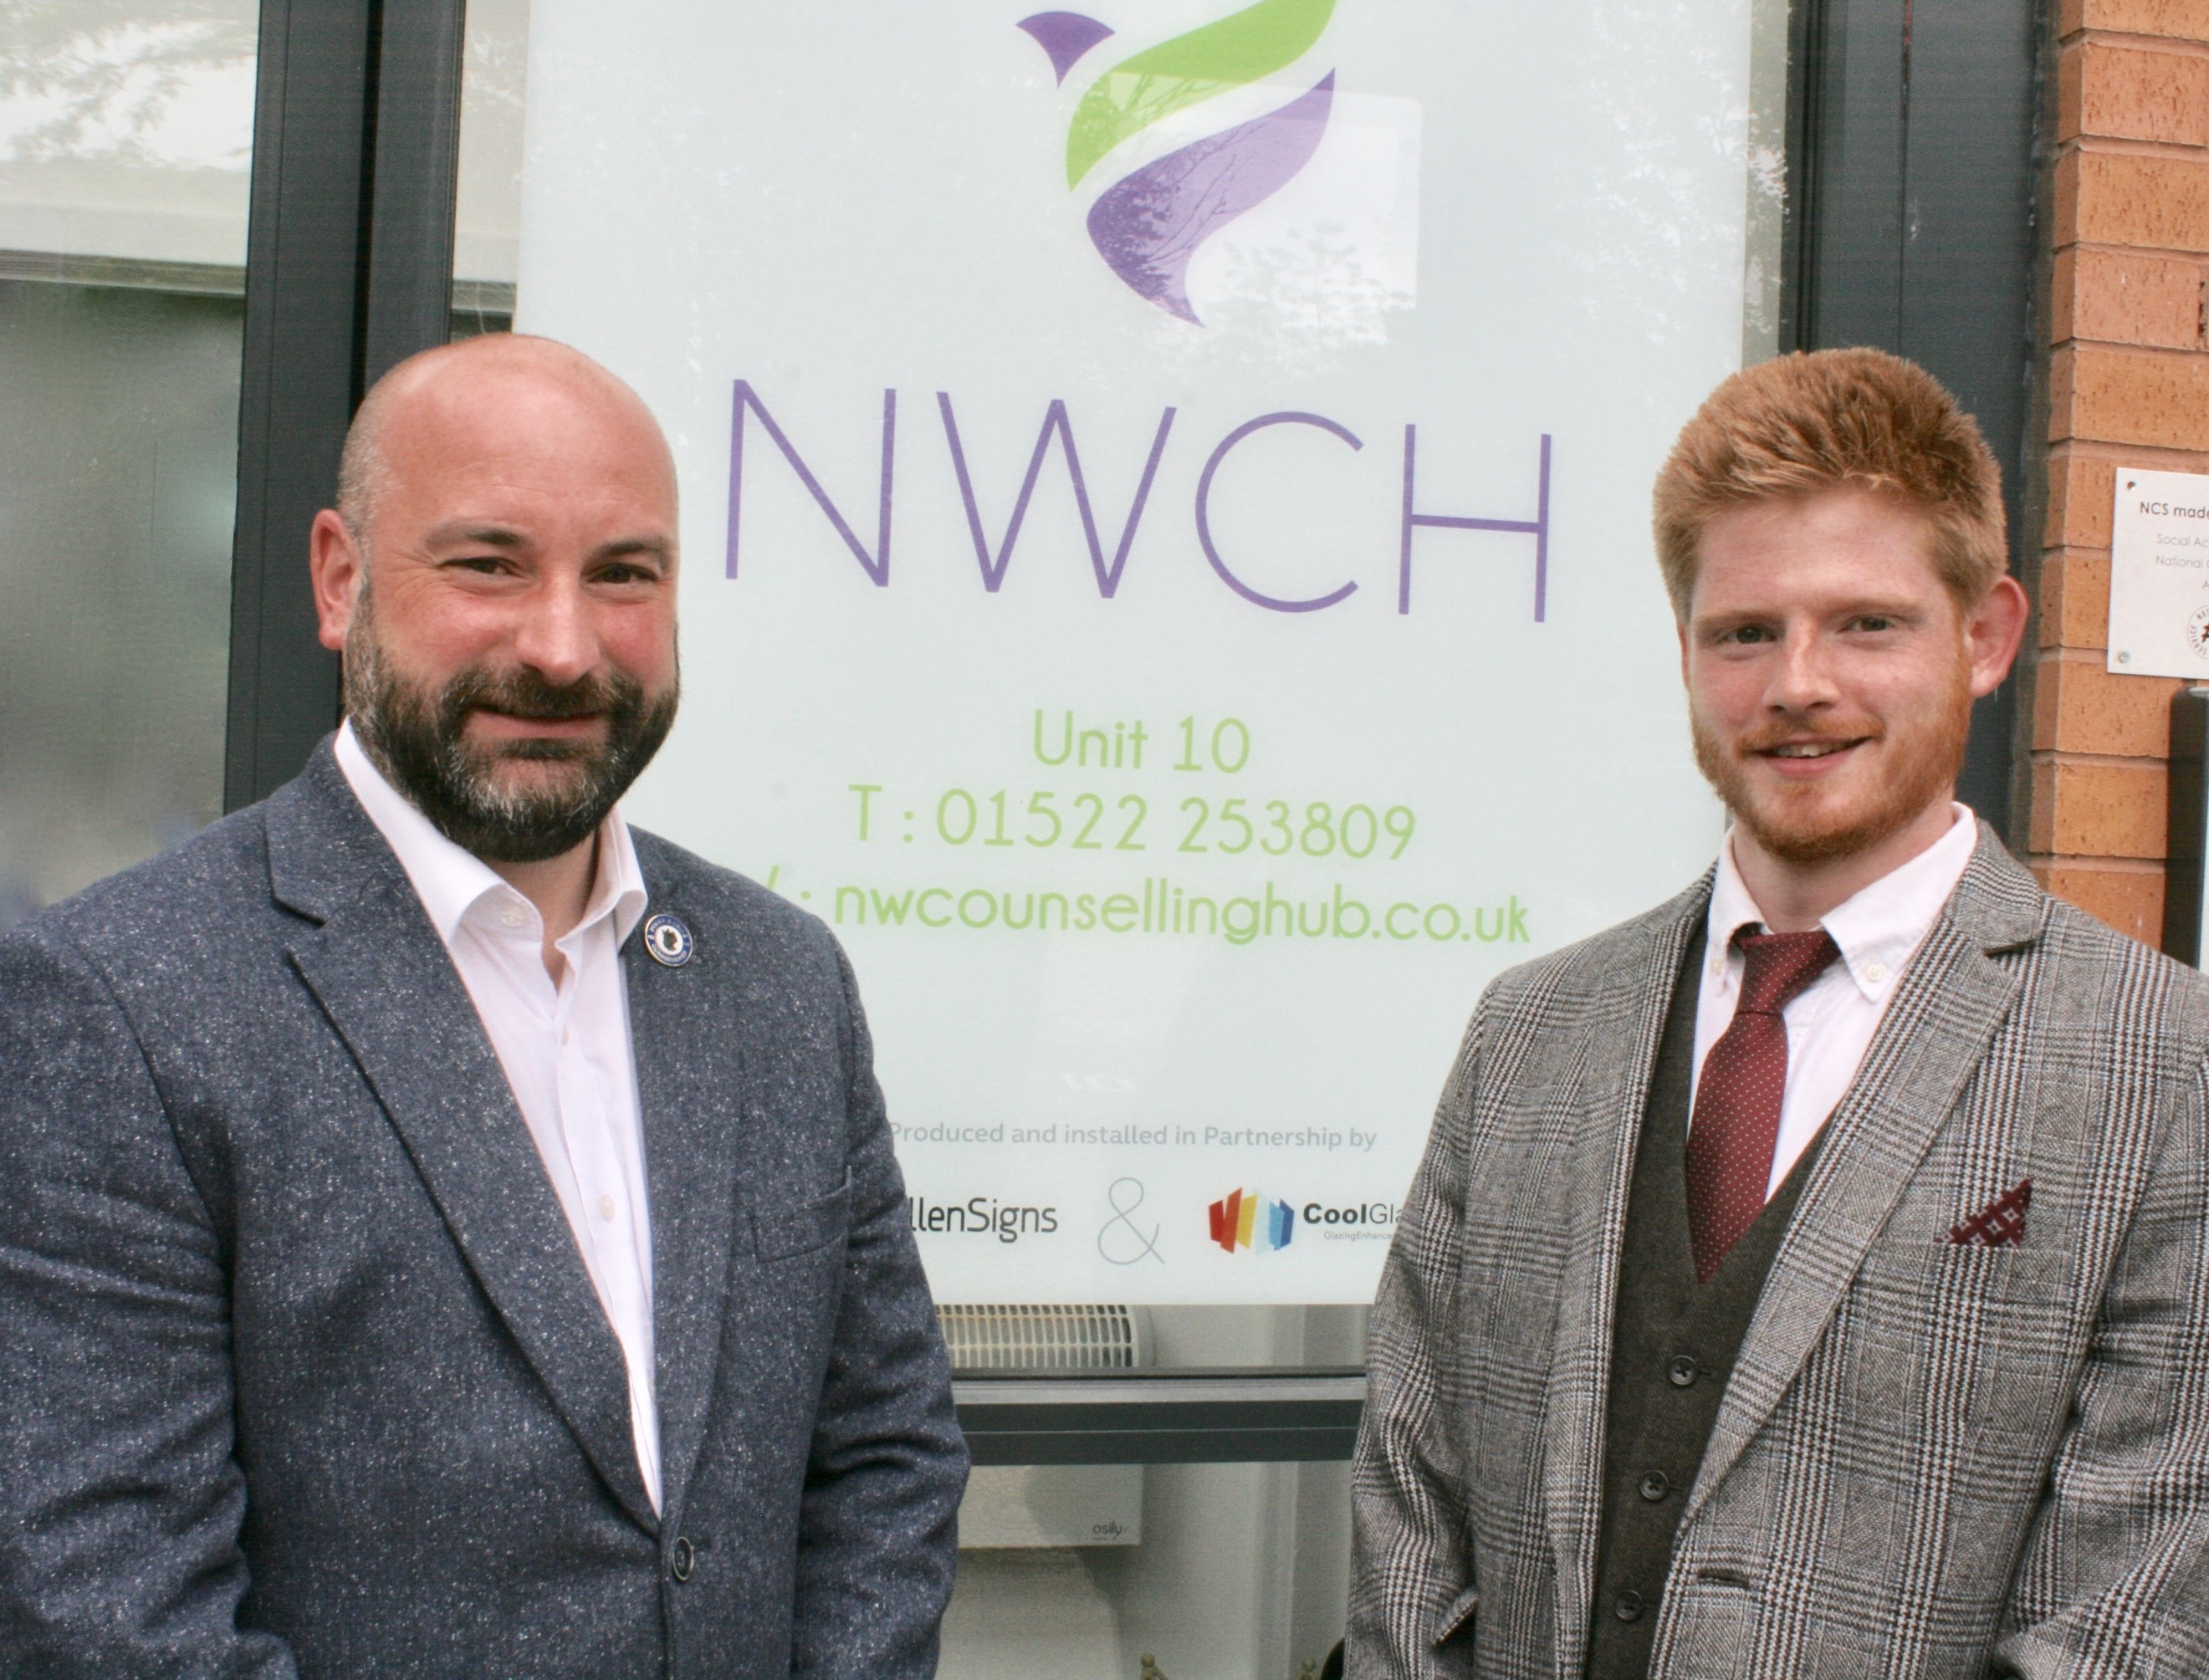 Lincolnshire PCC Visits NW Counselling HUB